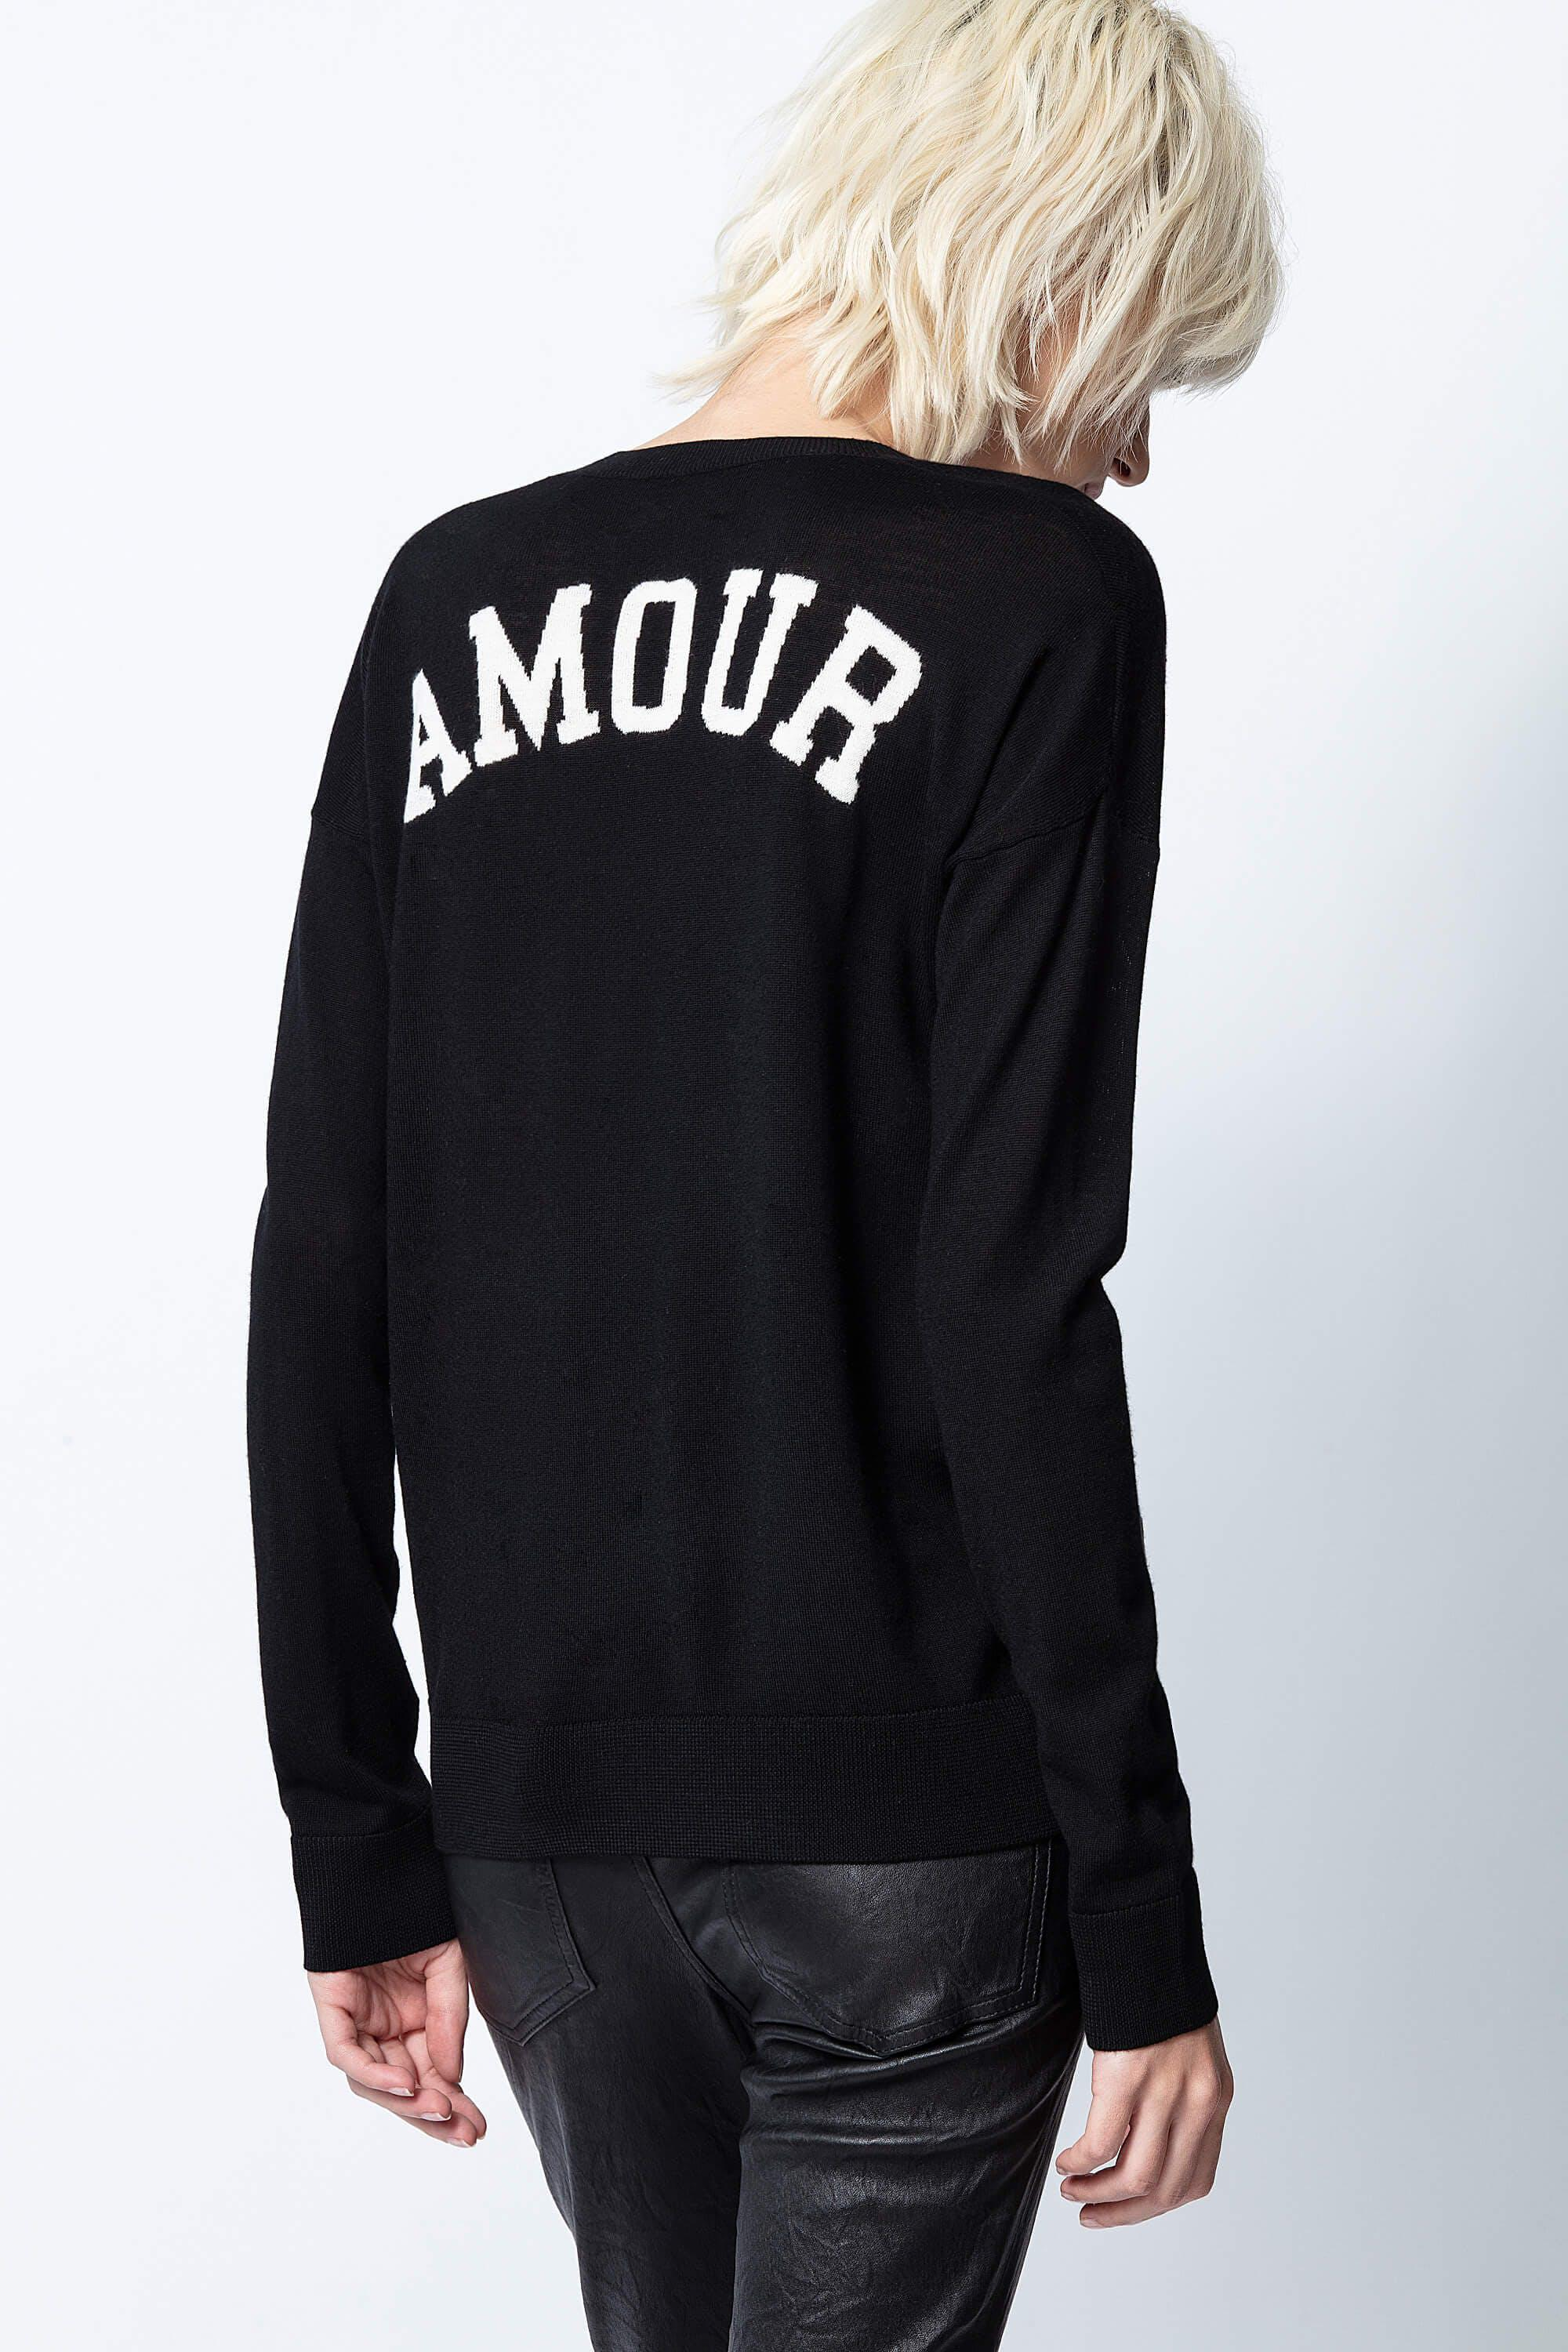 Happy Amour Sweater 1